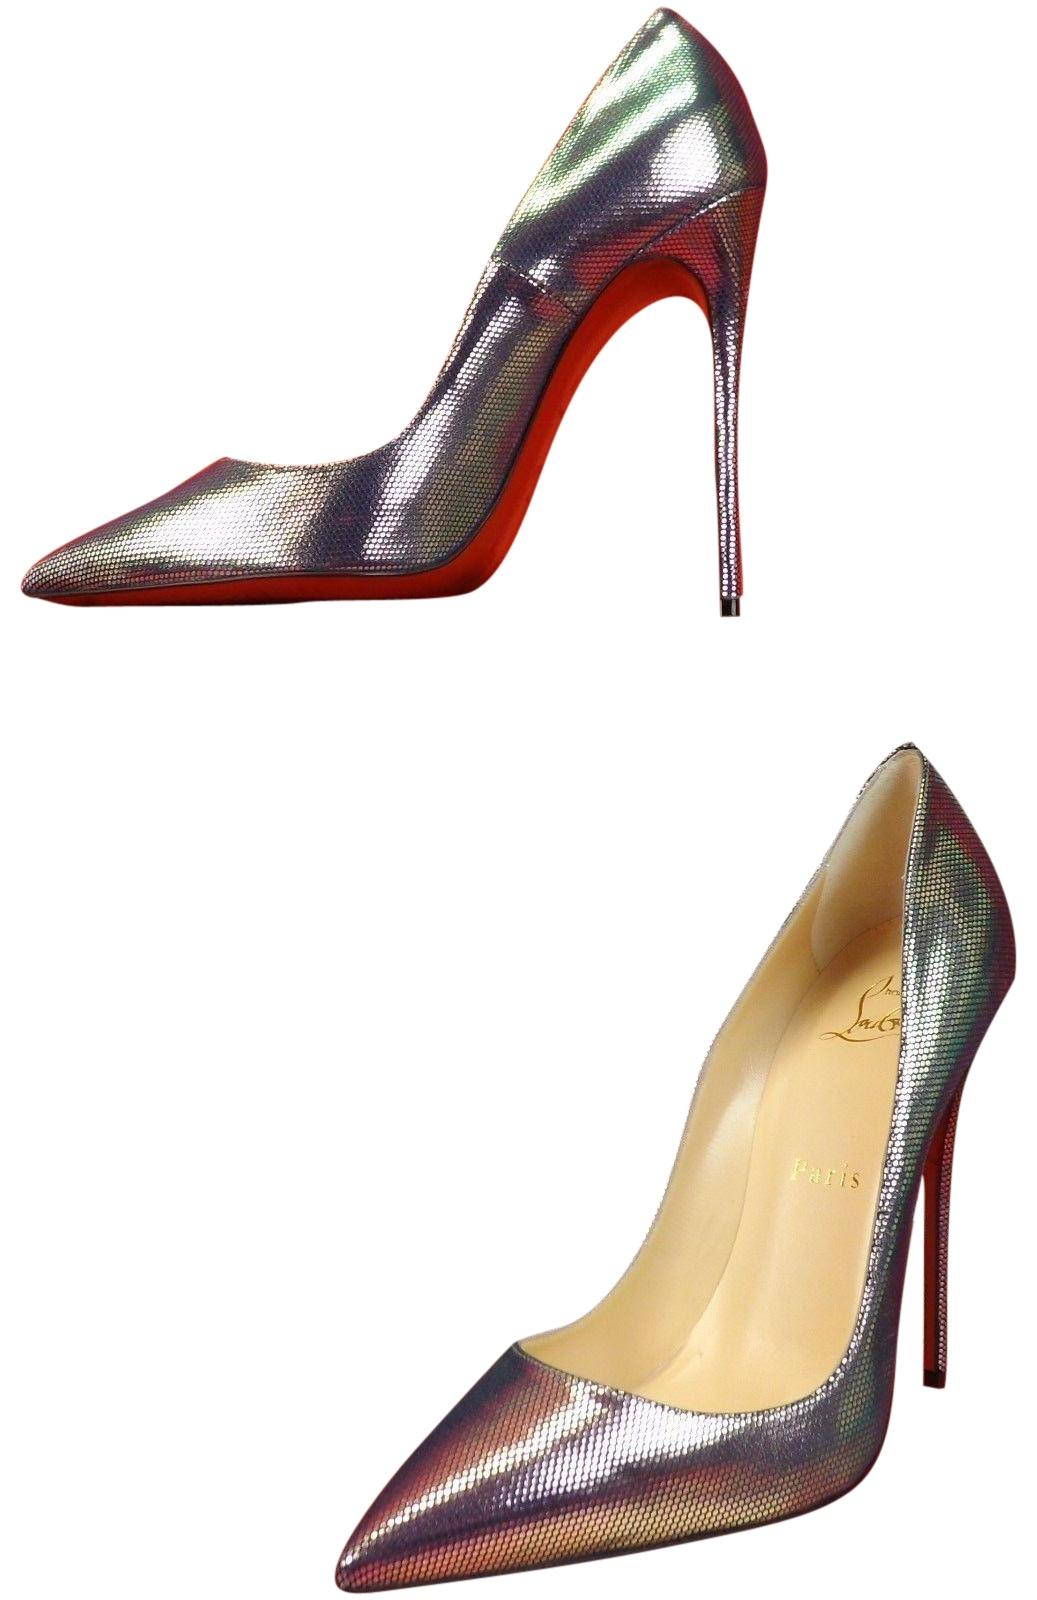 2bed1d49f0f9 Christian Louboutin Multi Color Digitale So Kate 120 120 120 Silver Tissu  Scarabe Leather Classic Pumps Size EU 39 (Approx. US 9) Regular (M